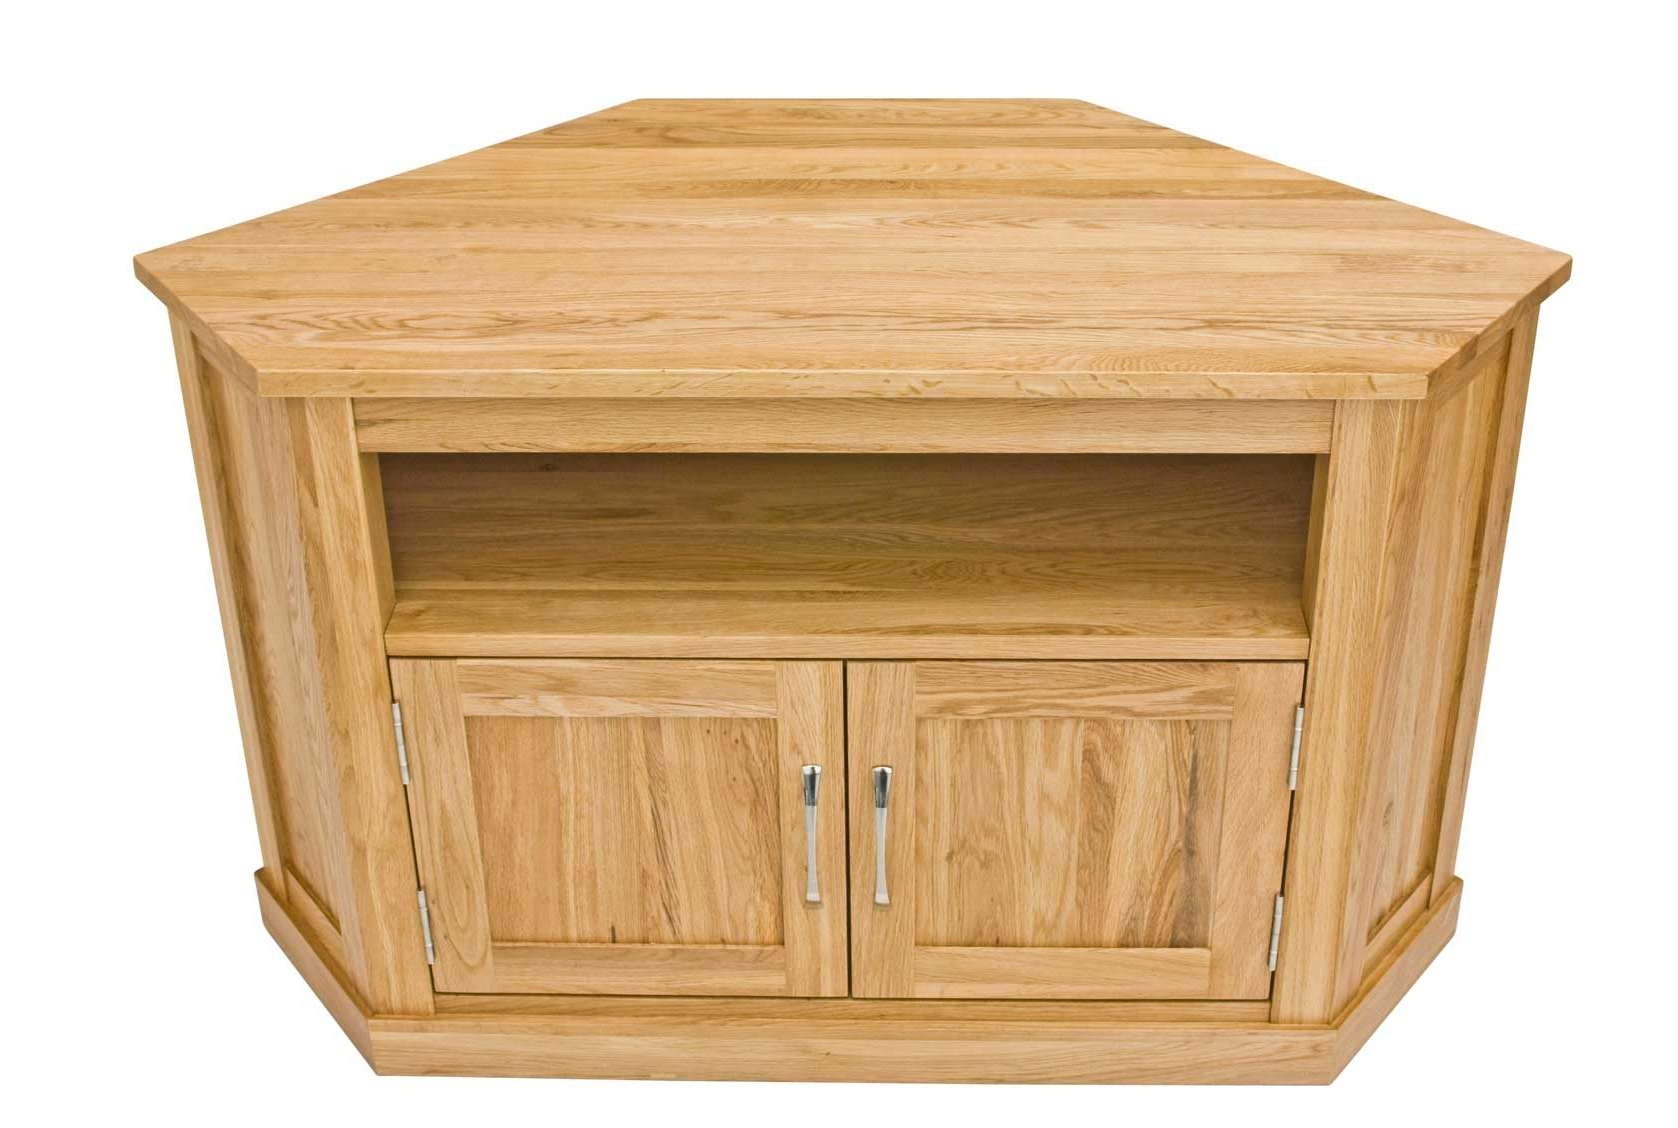 Classic Oak Corner Television Cabinet | Hampshire Furniture Within Solid Wood Corner Tv Cabinets (View 13 of 20)